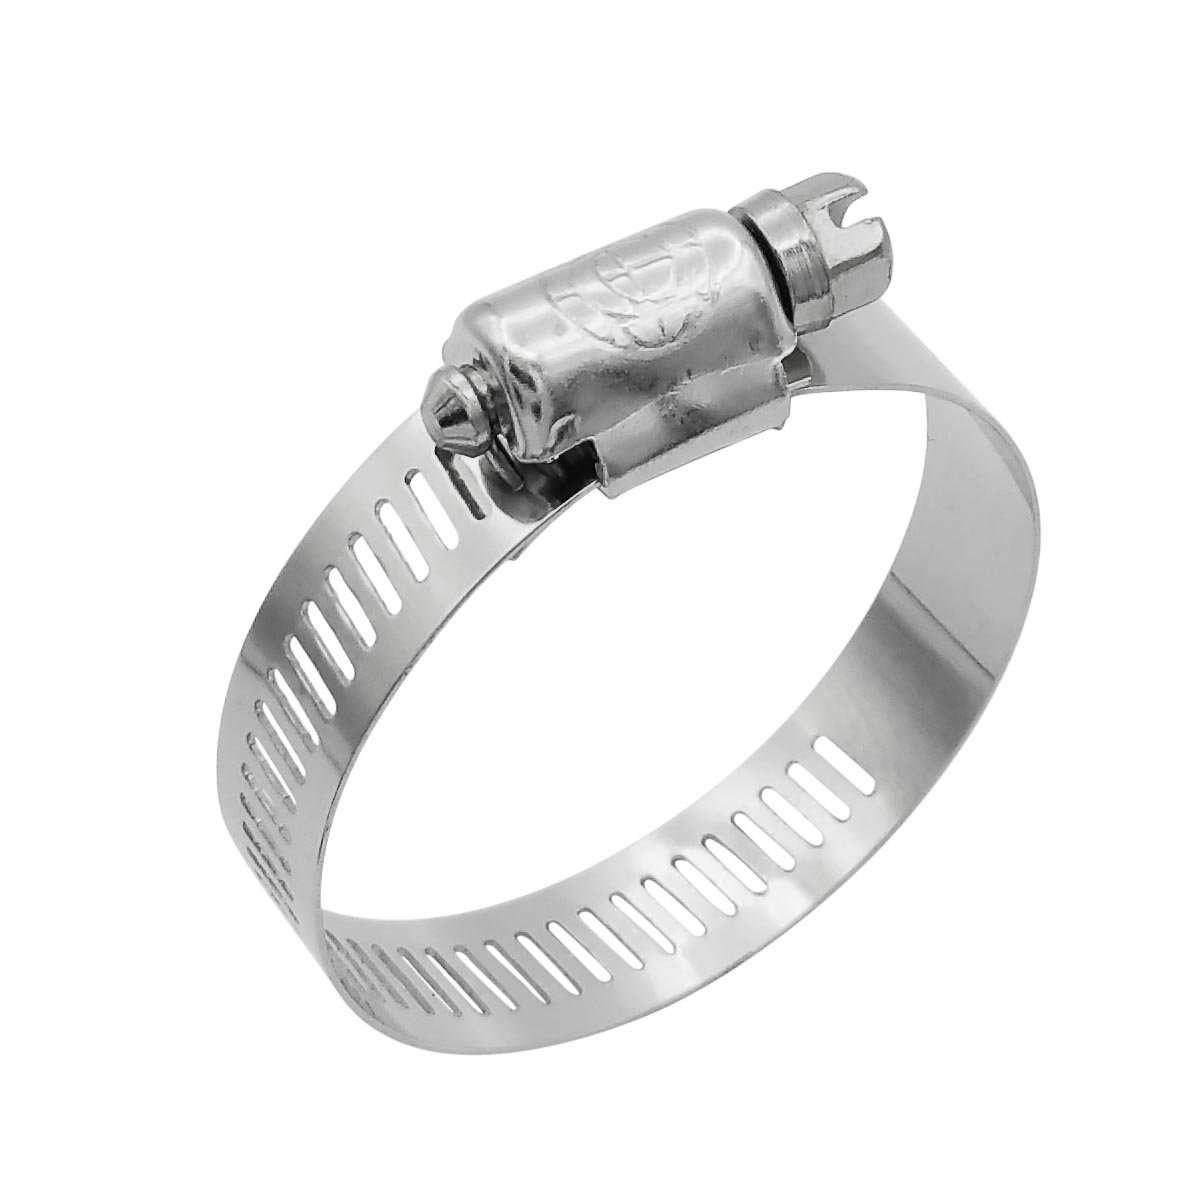 """Cambridge SAE Size 28 Worm Gear Hose Clamps, 10 pcs/Box. 1/2"""" Band Size, Min Dia 1-5/16"""", Max Dia 2-1/4"""", Exceeds 60 inch-pounds of torque. Stainless Steel Band & Housing, Zinc Plated Screw."""